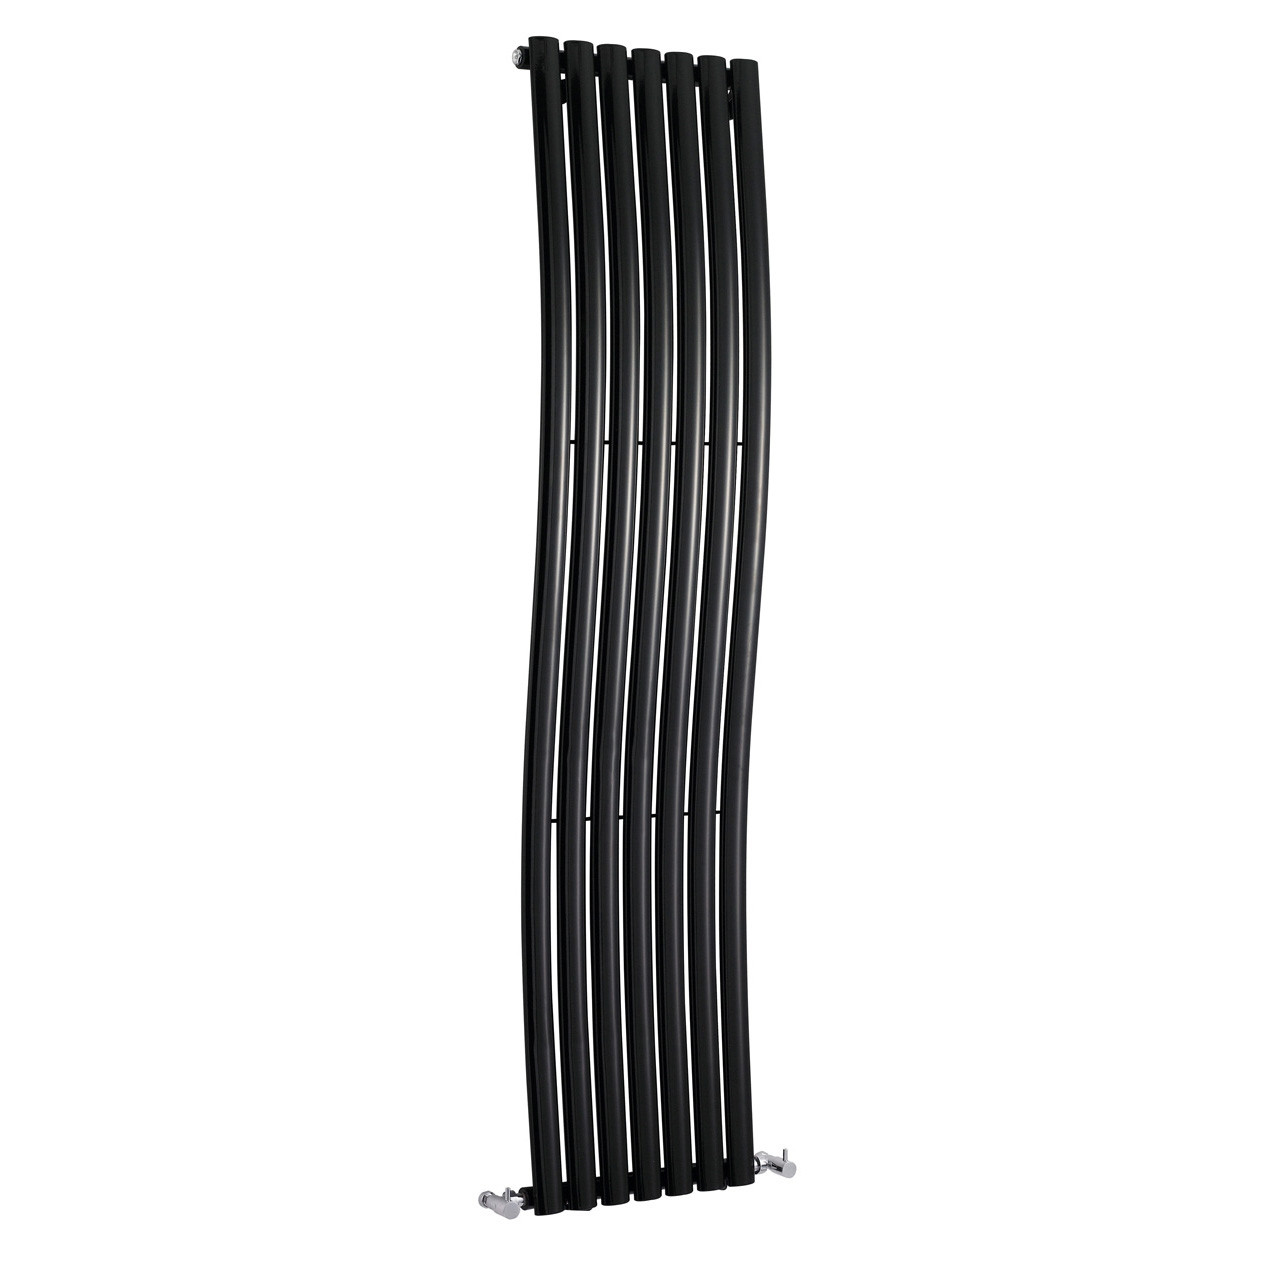 Hudson Reed Revive Wave Radiator 1785mm x 413mm - HLB95